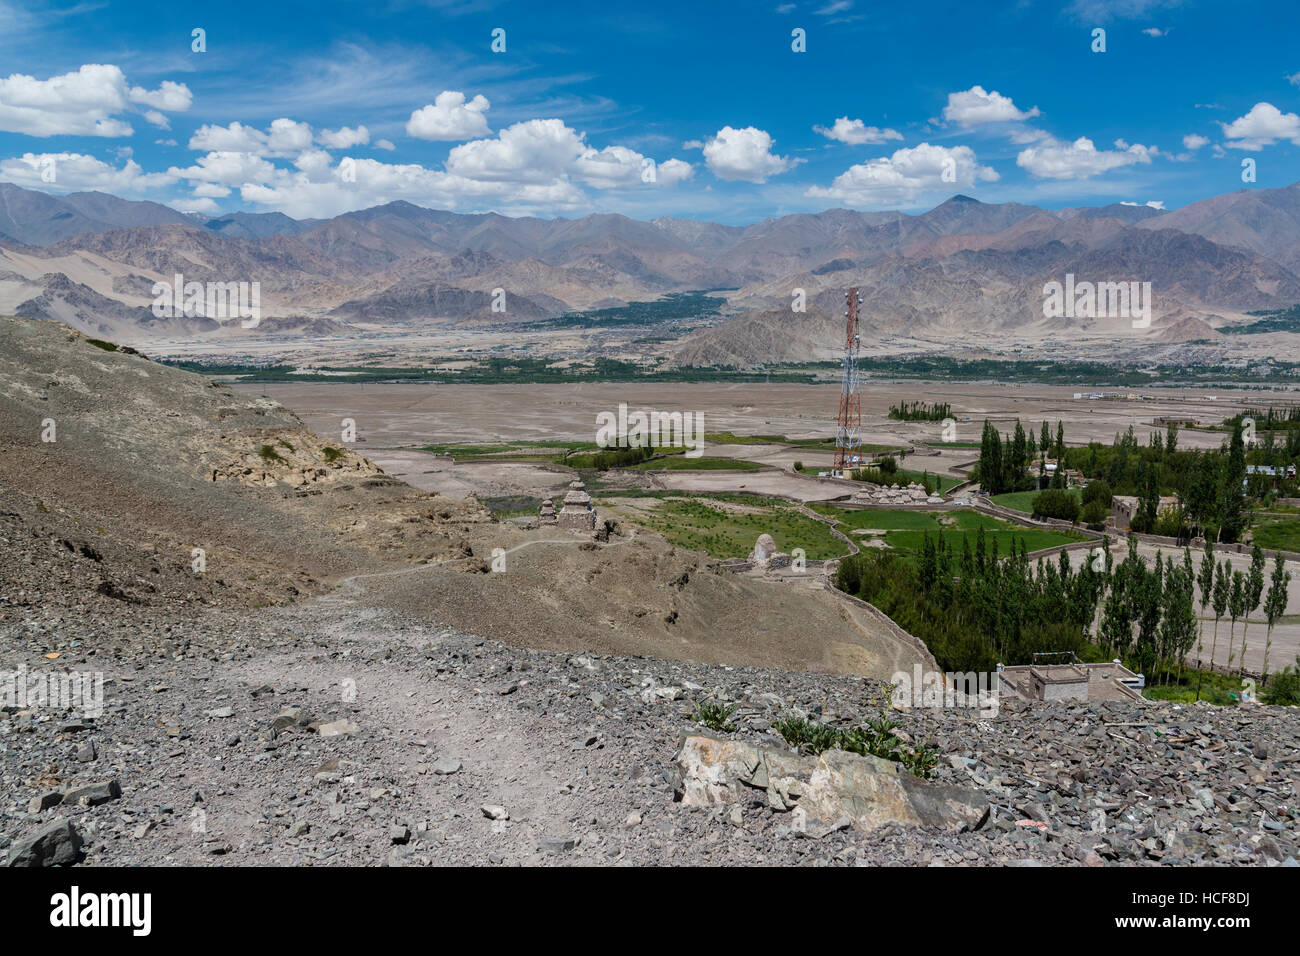 Ladakh landscape showing human settlement and Himalayan mountains in the background - Stock Image